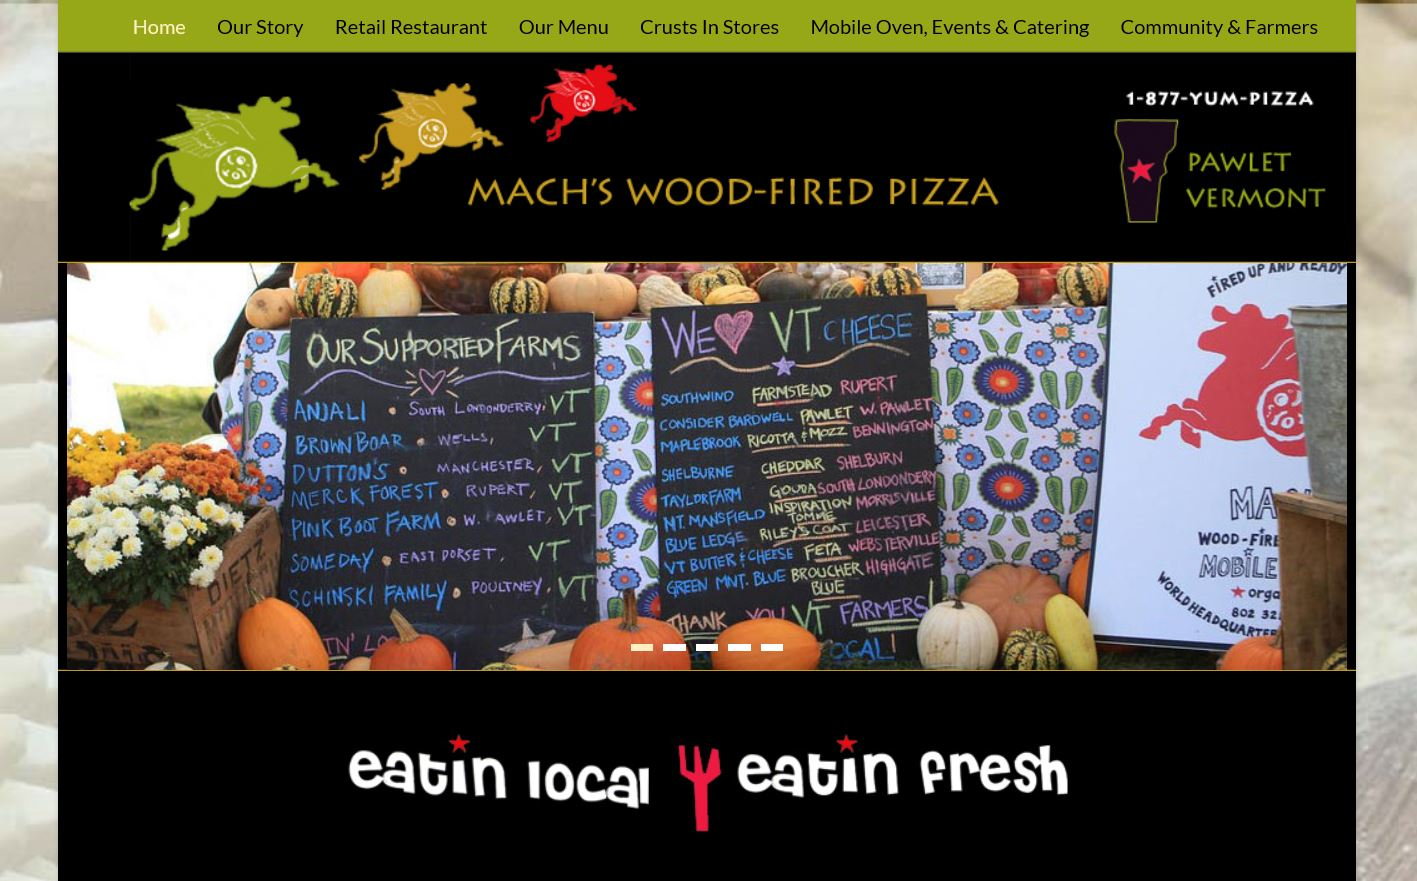 Mach's Wood-Fired Pizza